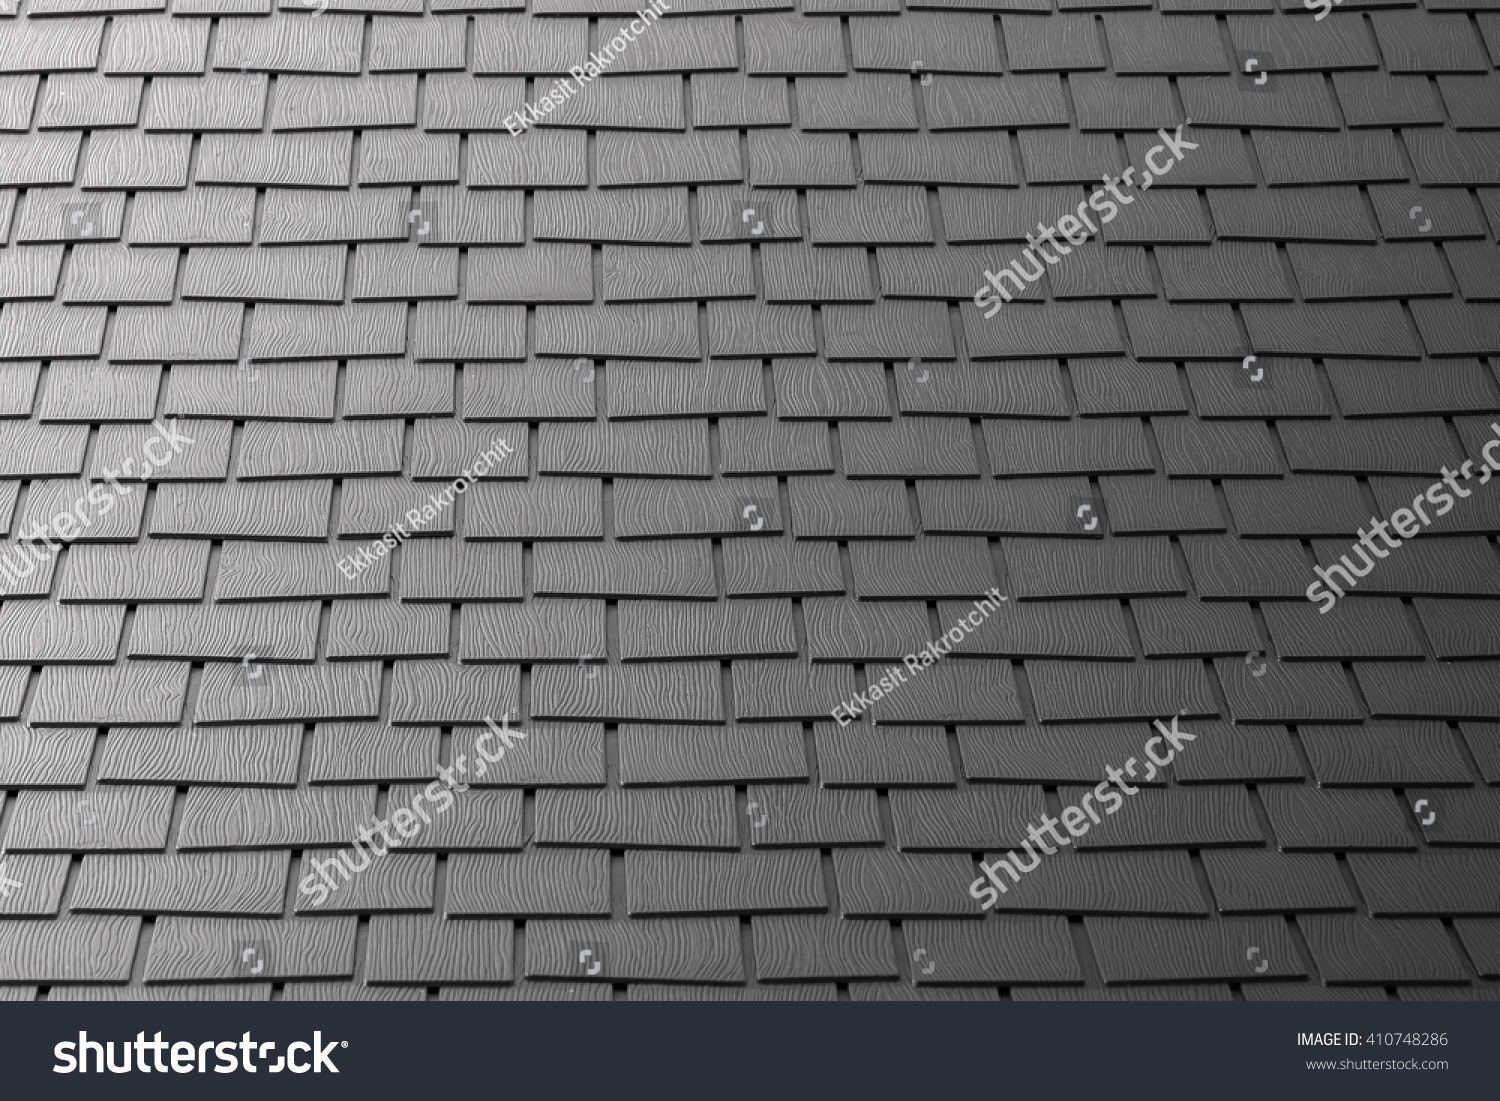 Roof floor tiles image collections tile flooring design ideas tiles roofing houses roof floor black stock photo 410748286 tiles for roofing for houses roof floor dailygadgetfo Images